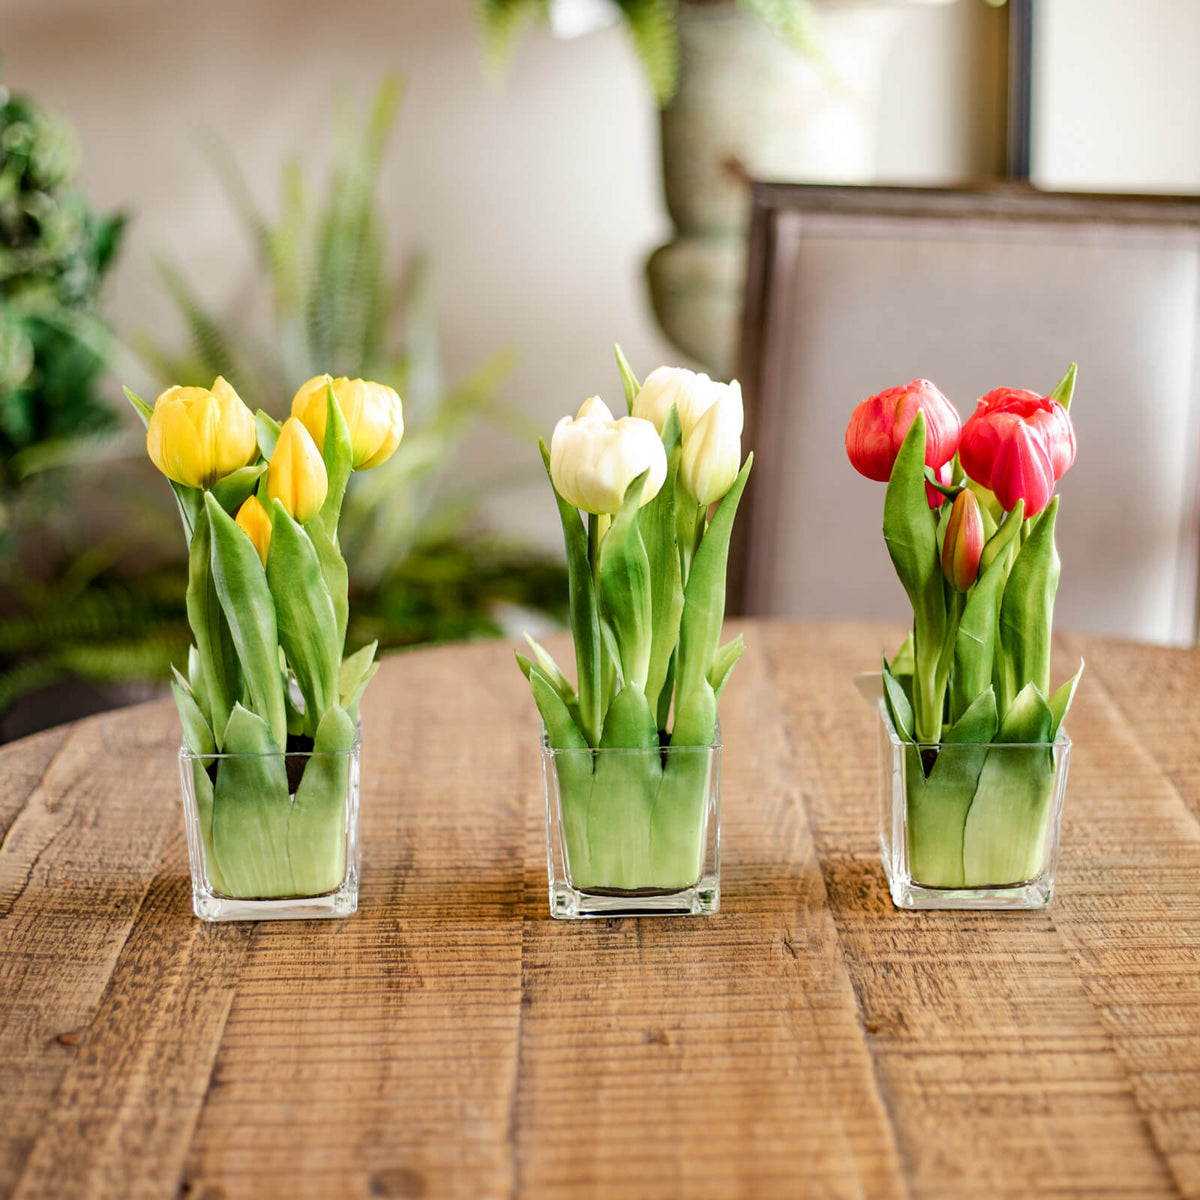 Luxury realistic faux yellow, white and pink tulips in clear glass containers on a tabletop.